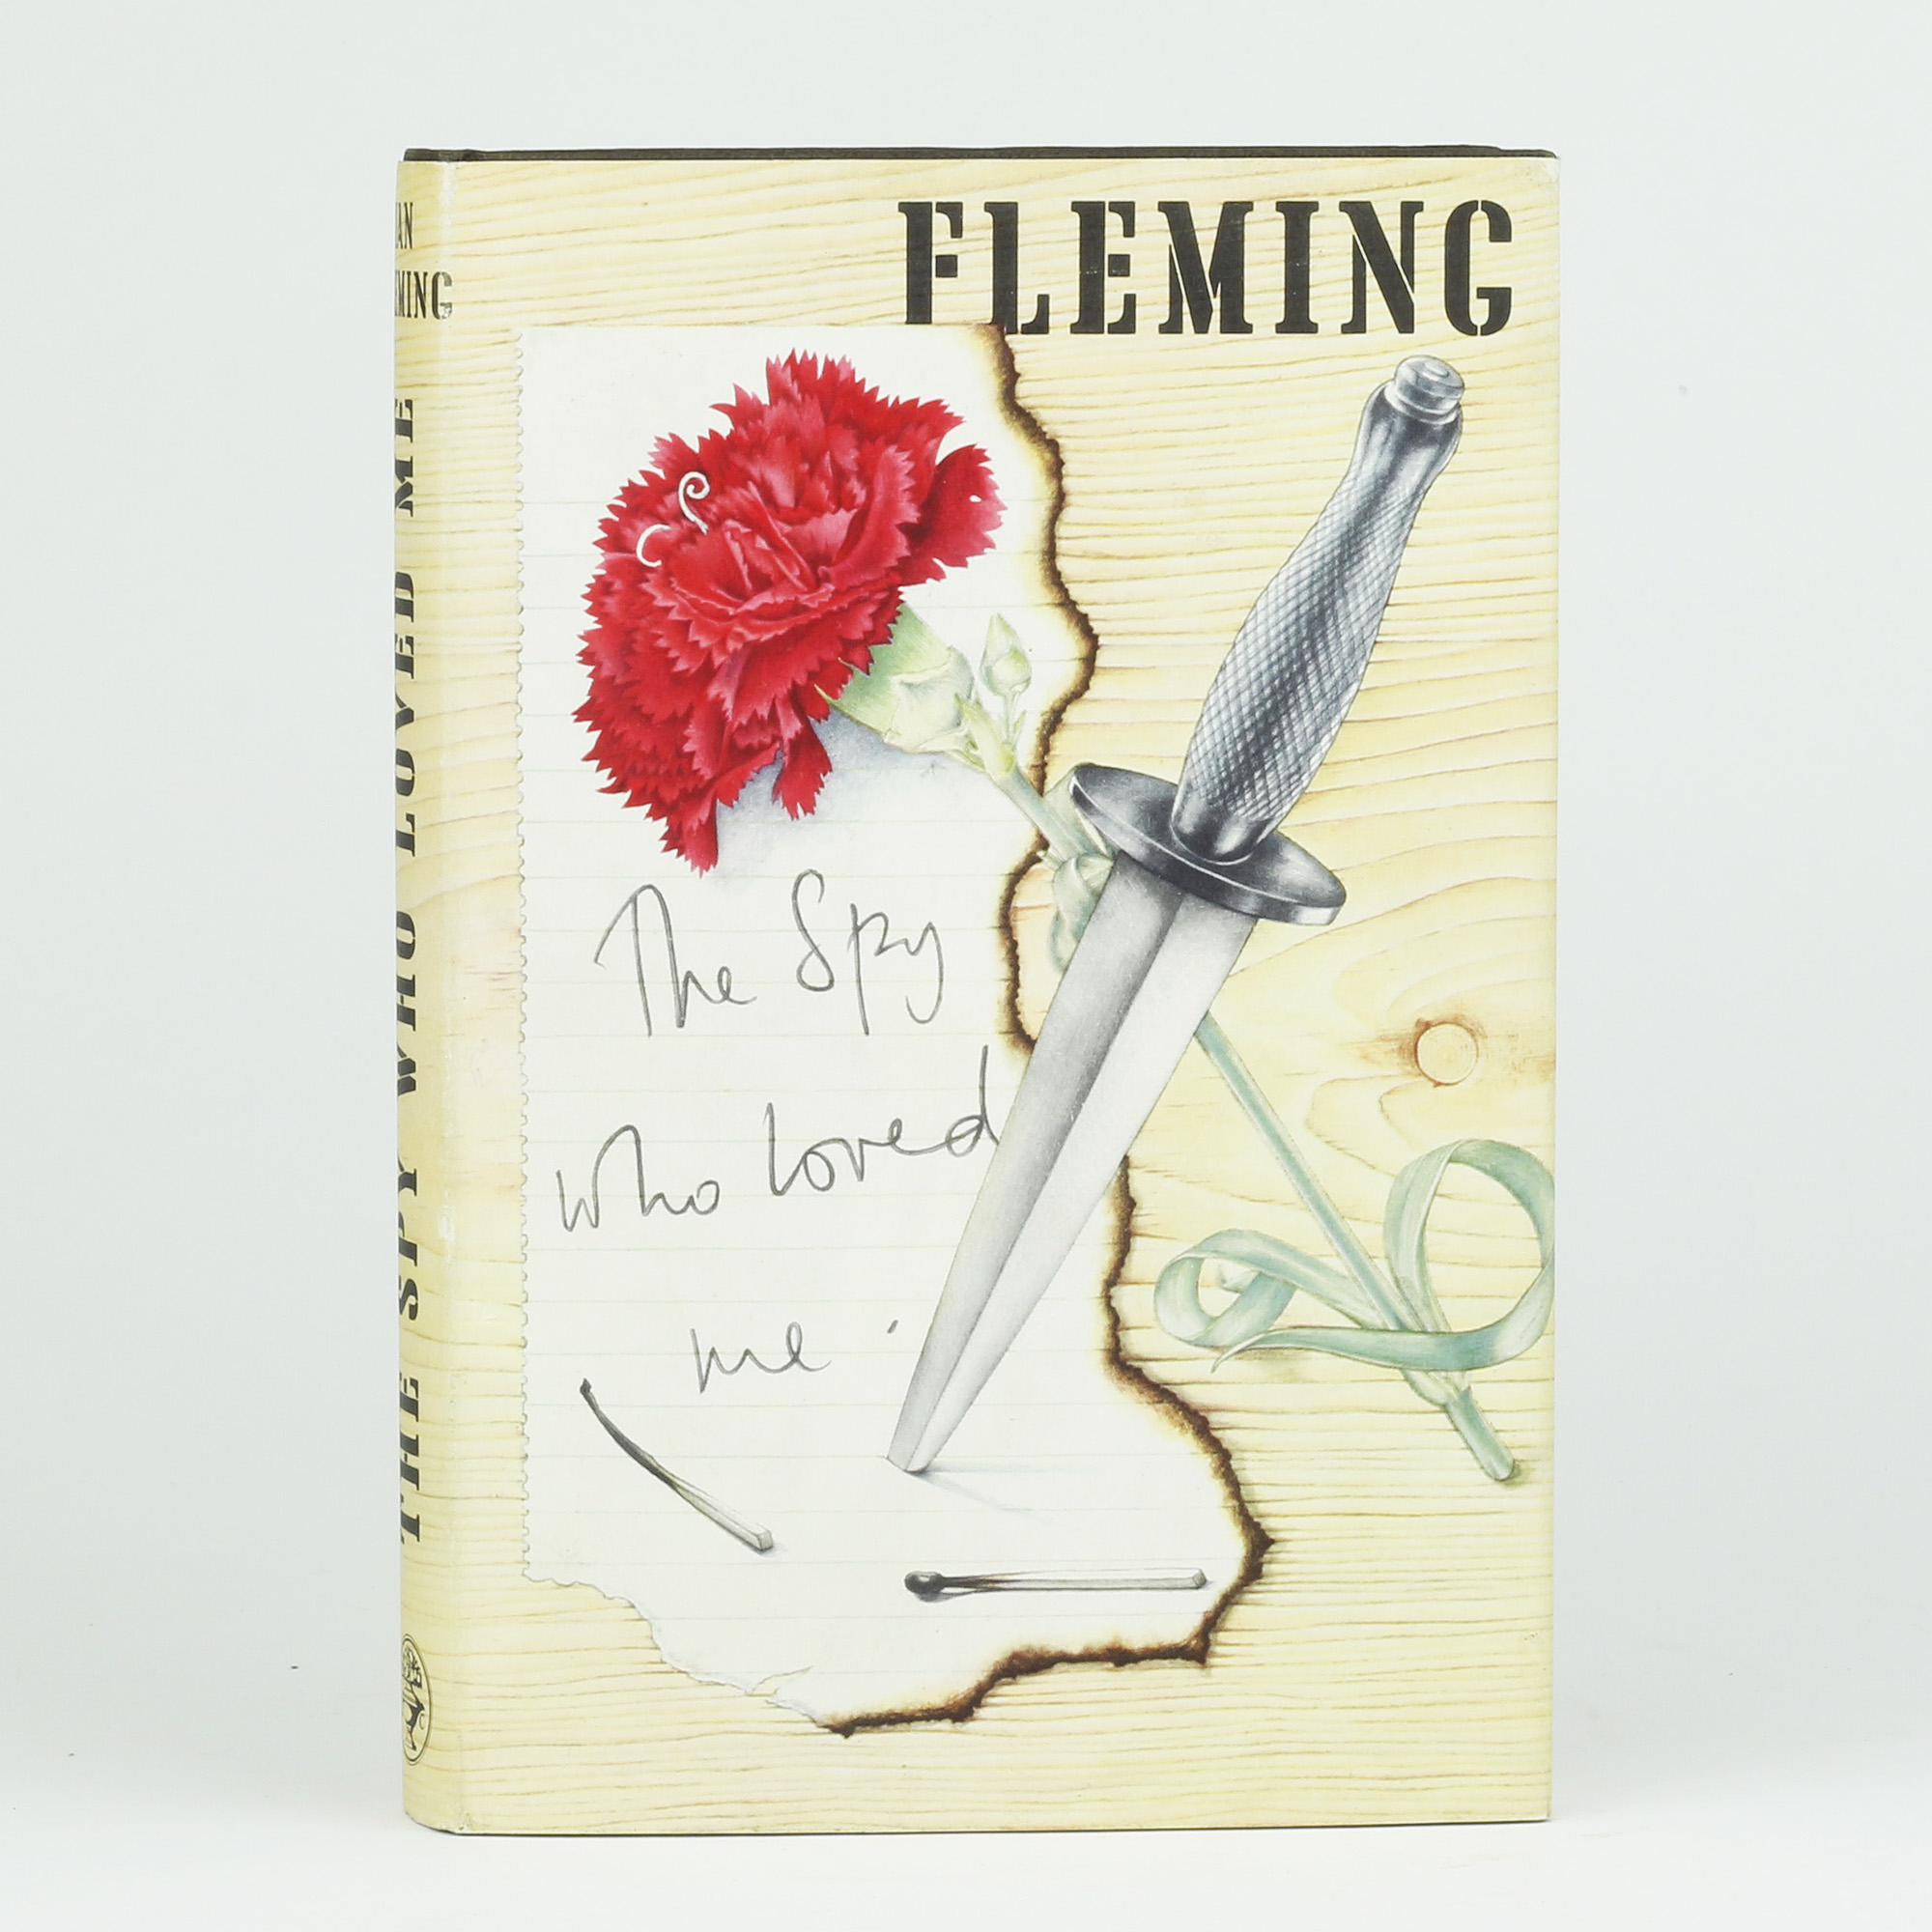 1962 THE SPY WHO LOVED ME Ian Fleming First UK Edition 1st Print James Bond 007